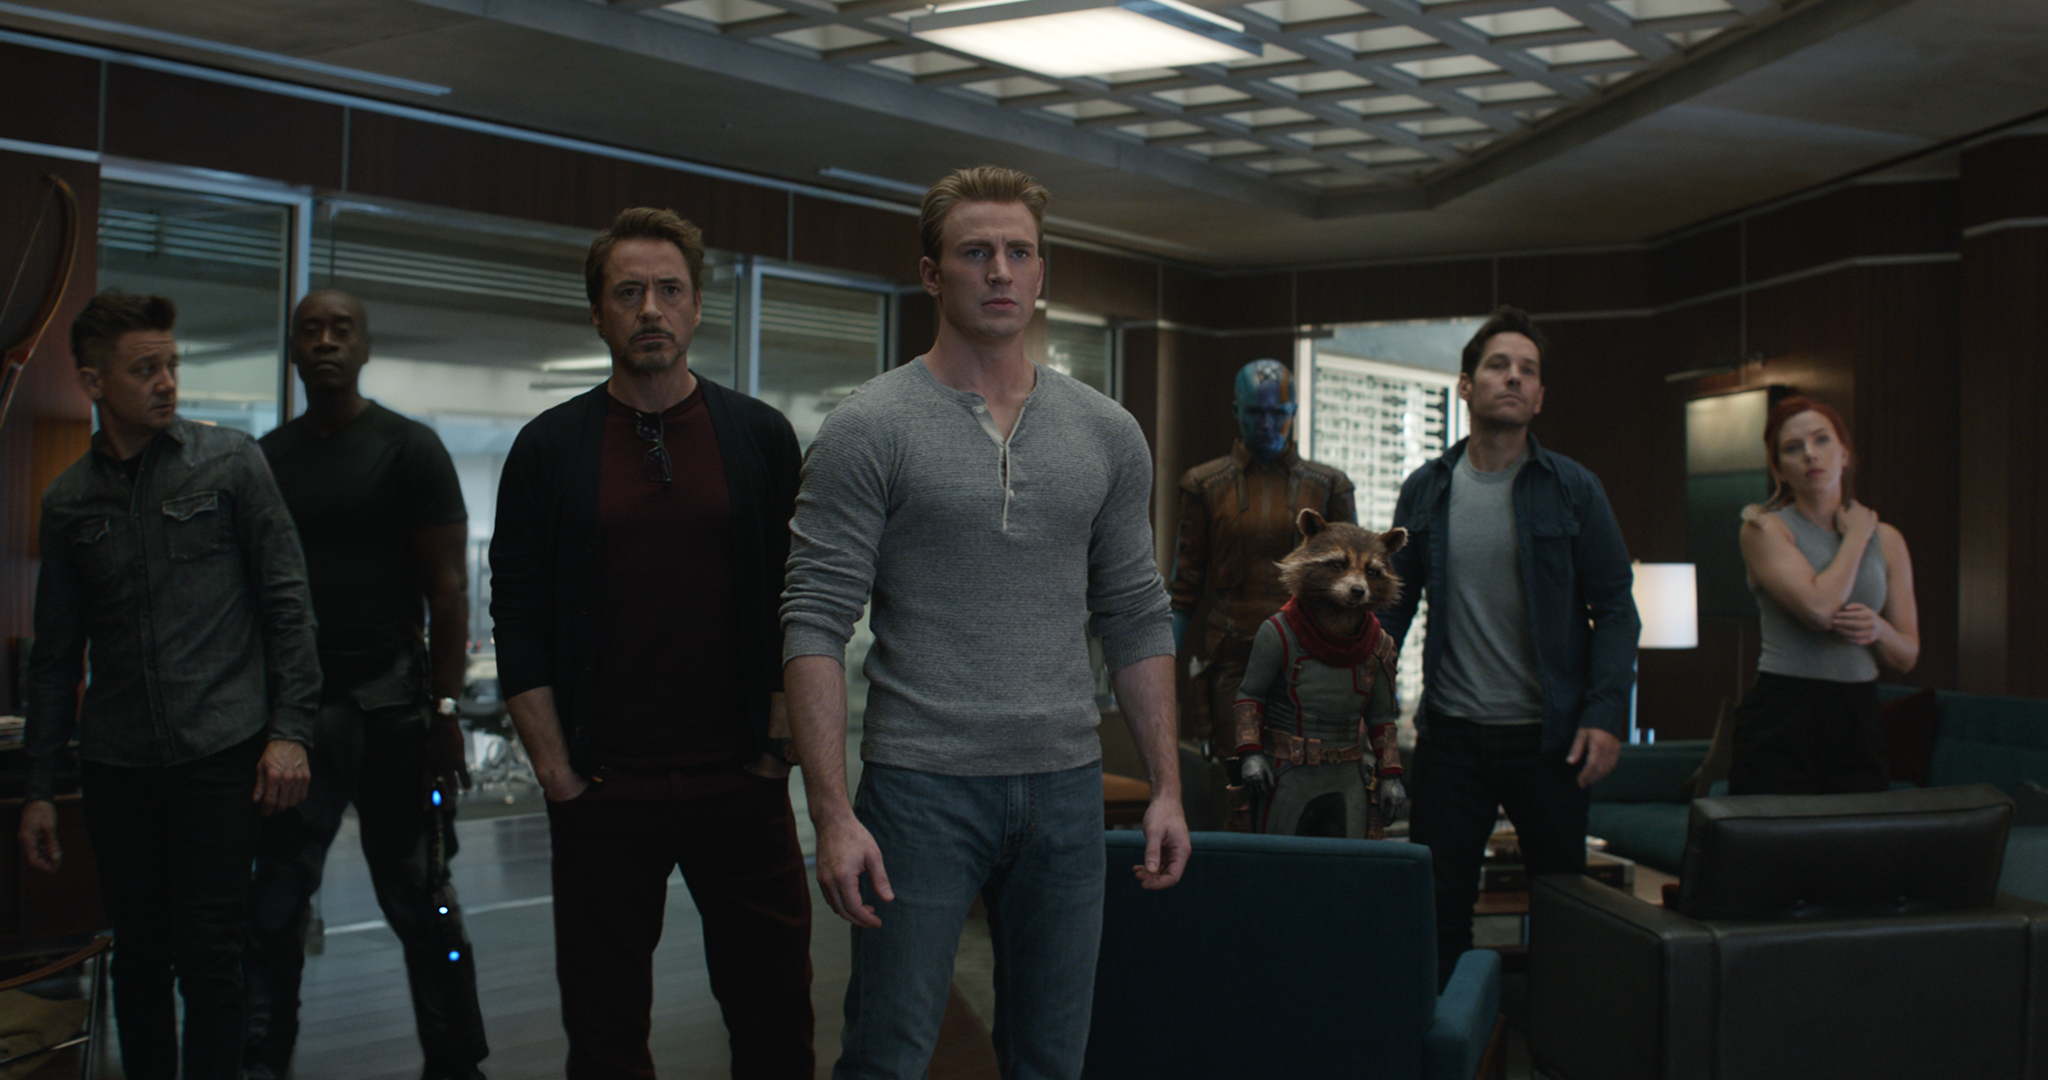 Avengers Reassemble!: What's left of the gang gets back together for round two with Thanos.